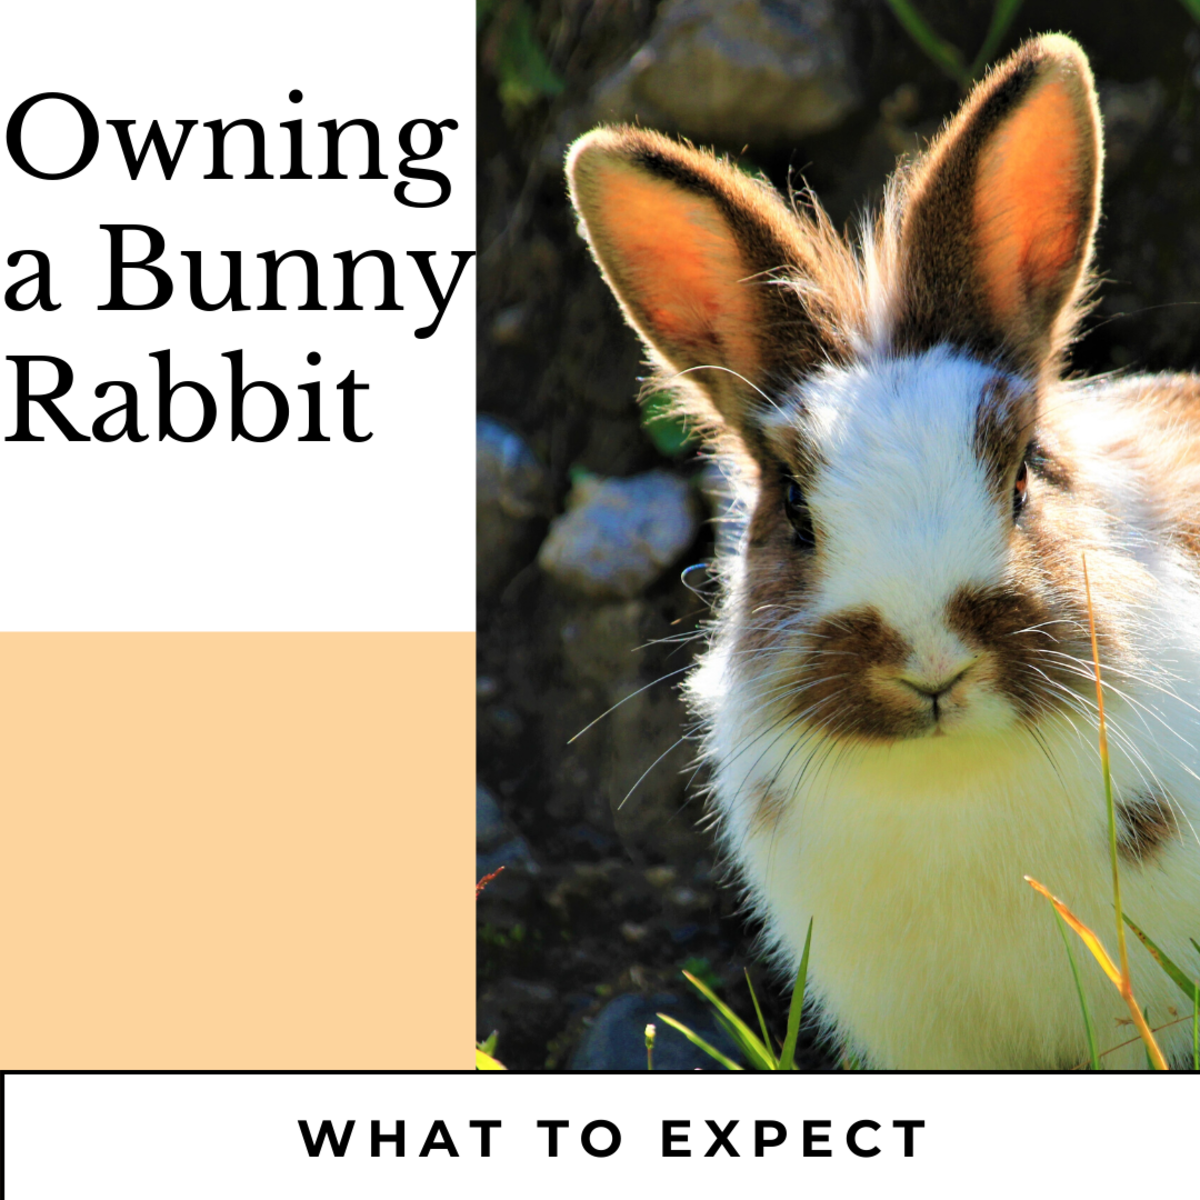 Owning a rabbit is so much different to a cat. Rabbit loves hanging out with you and are very affectionate.